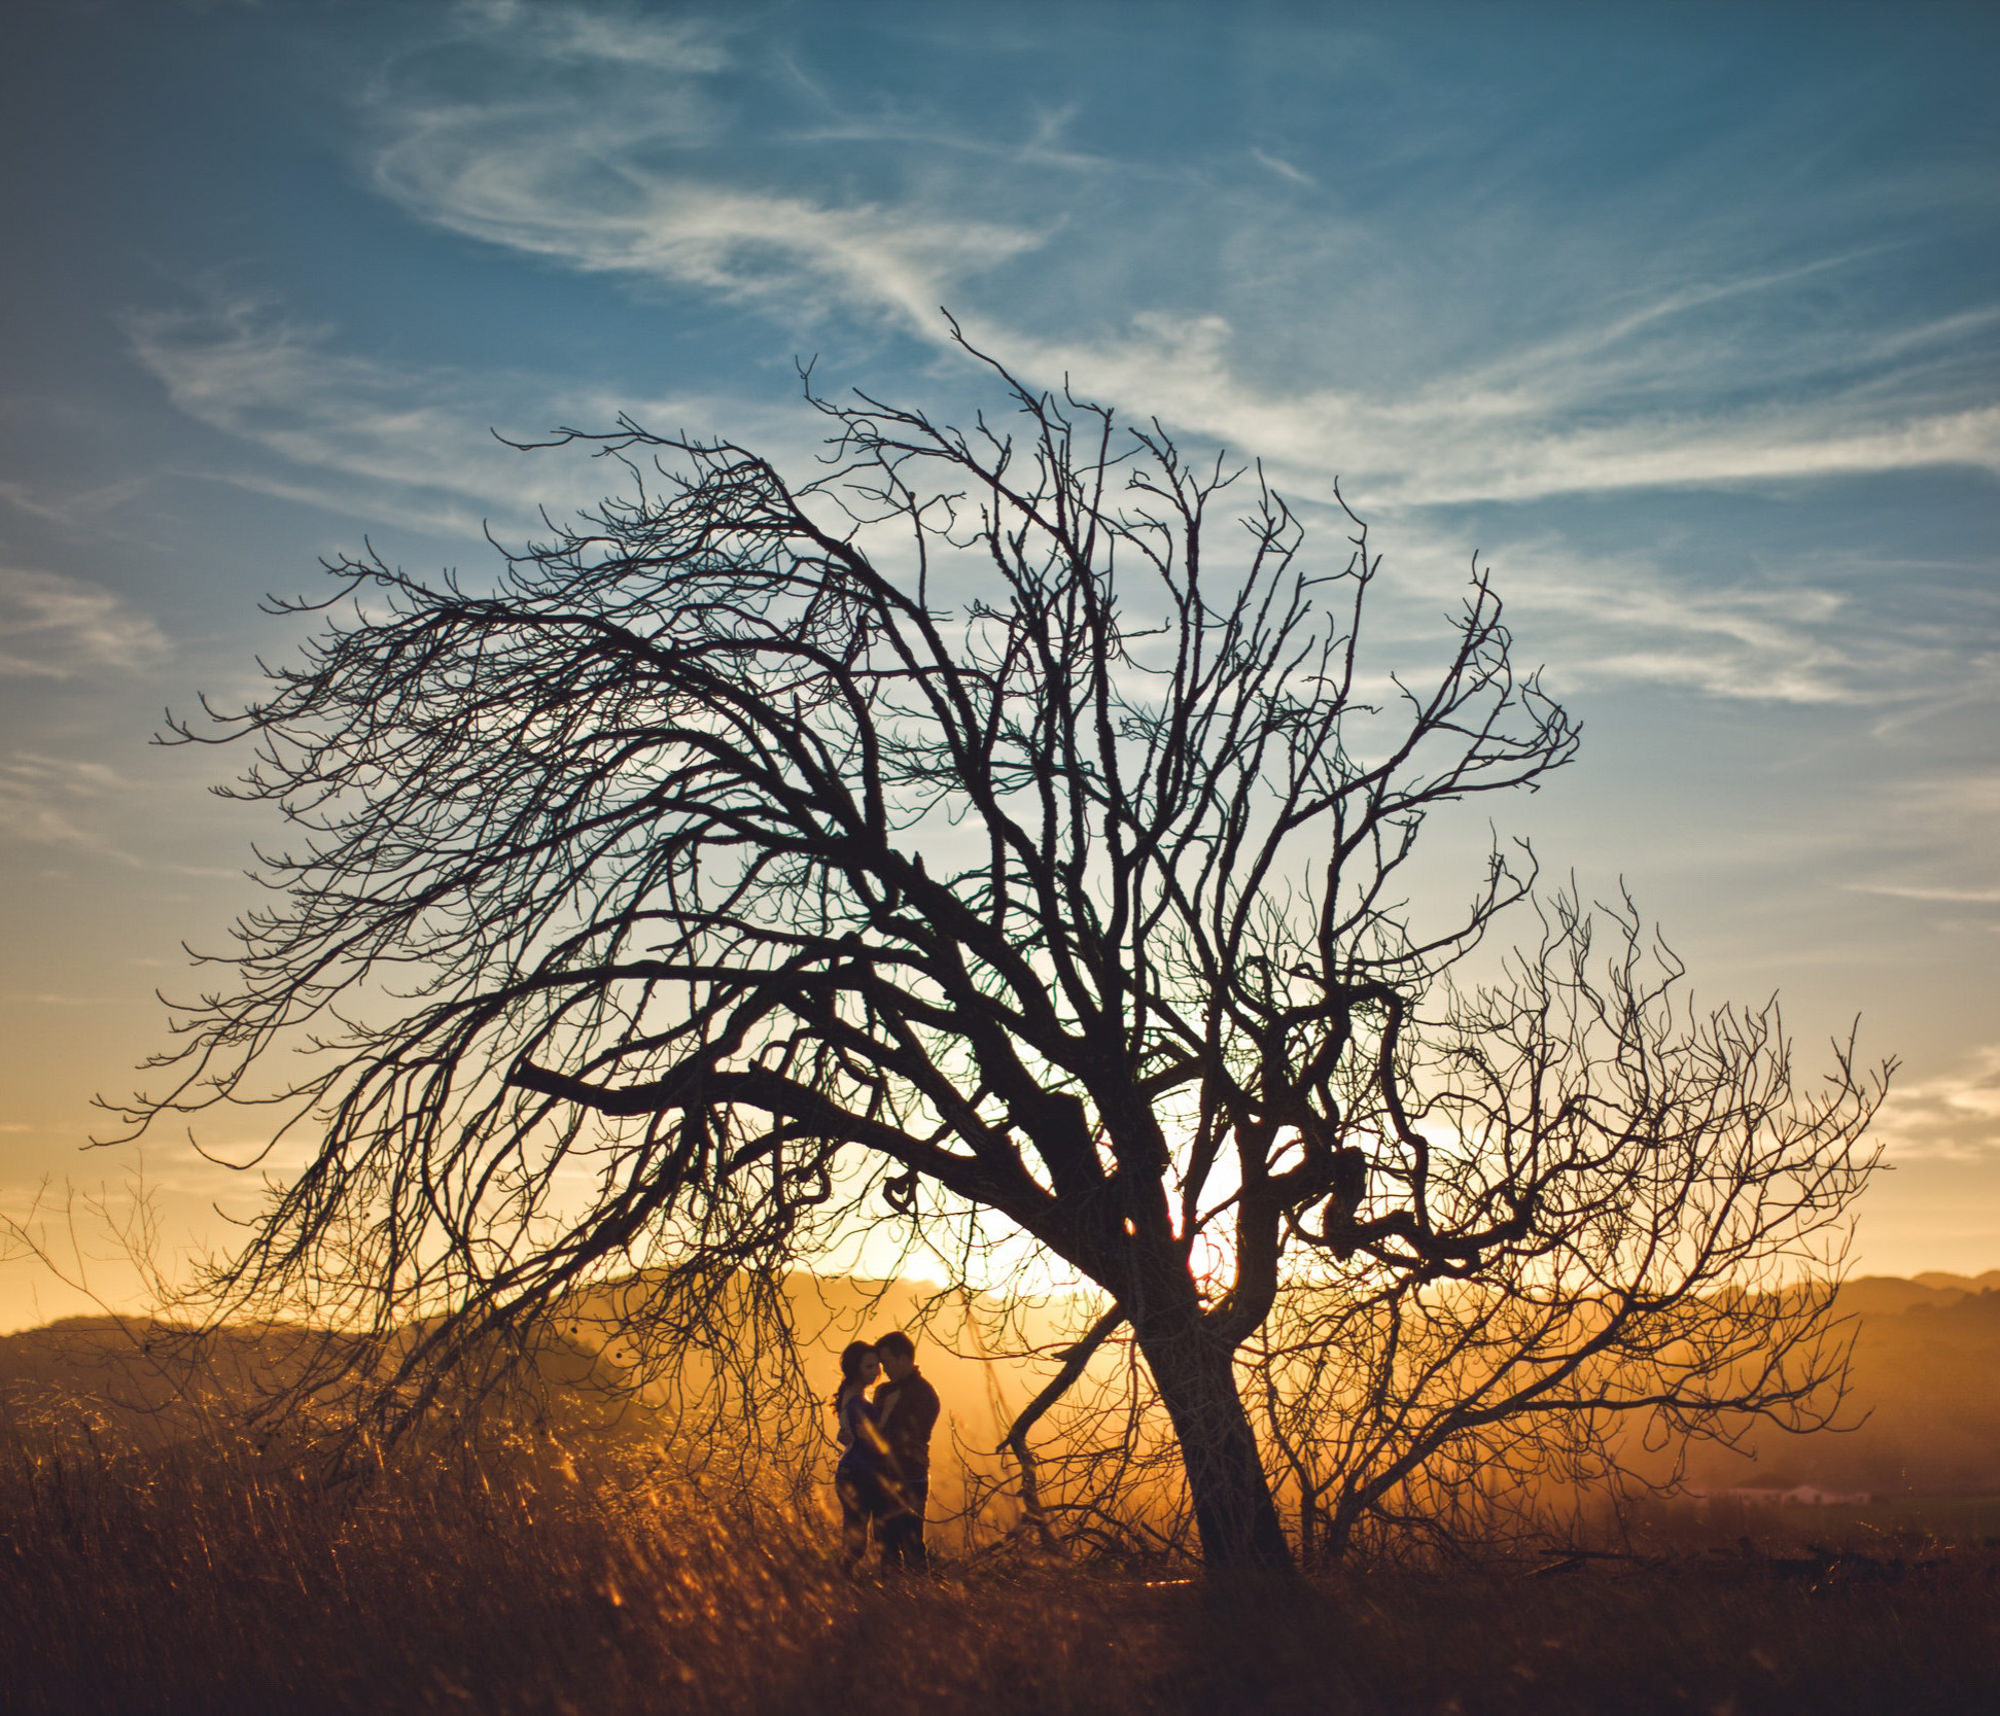 Silhouette of couple under tree in desert, by Jeff Newsom